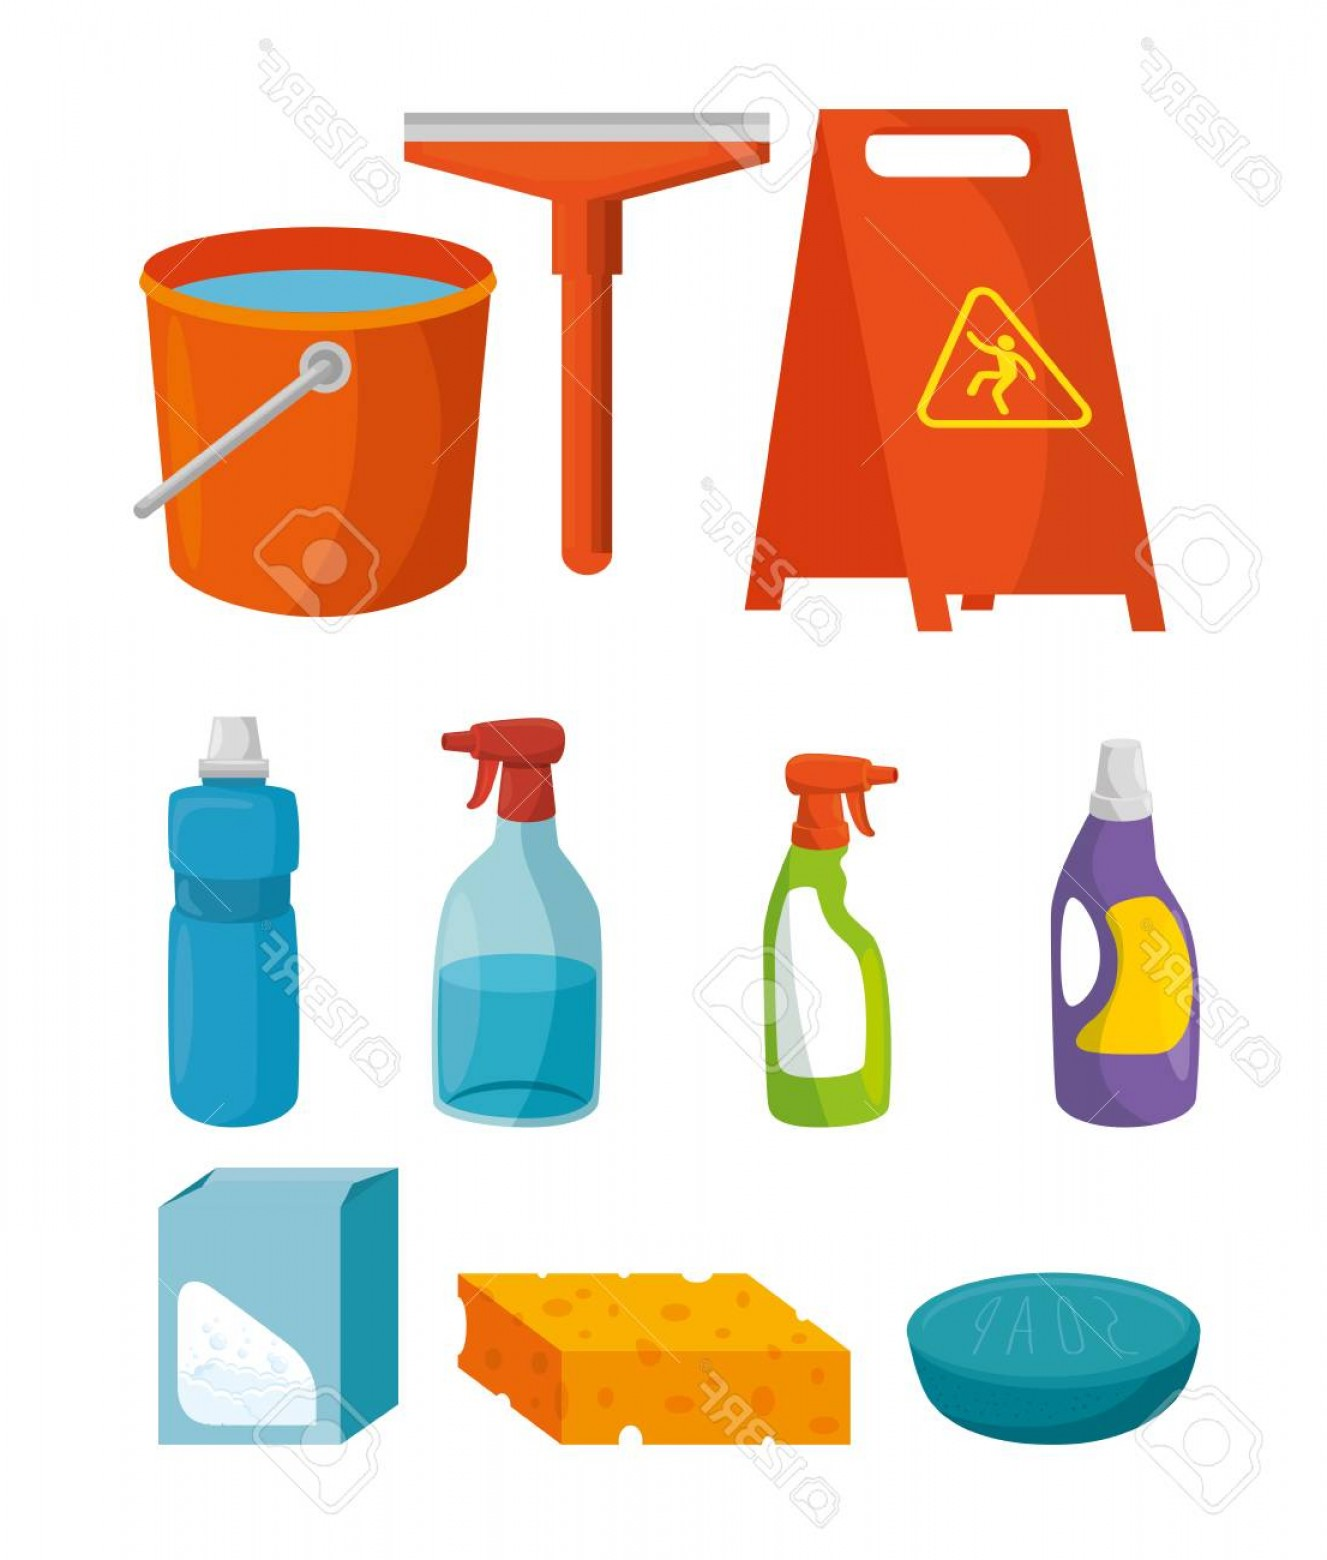 Supplies Vector Graphic: Photostock Vector Colorful Set Of Cleaning Supplies Vector Illustration Graphic Design